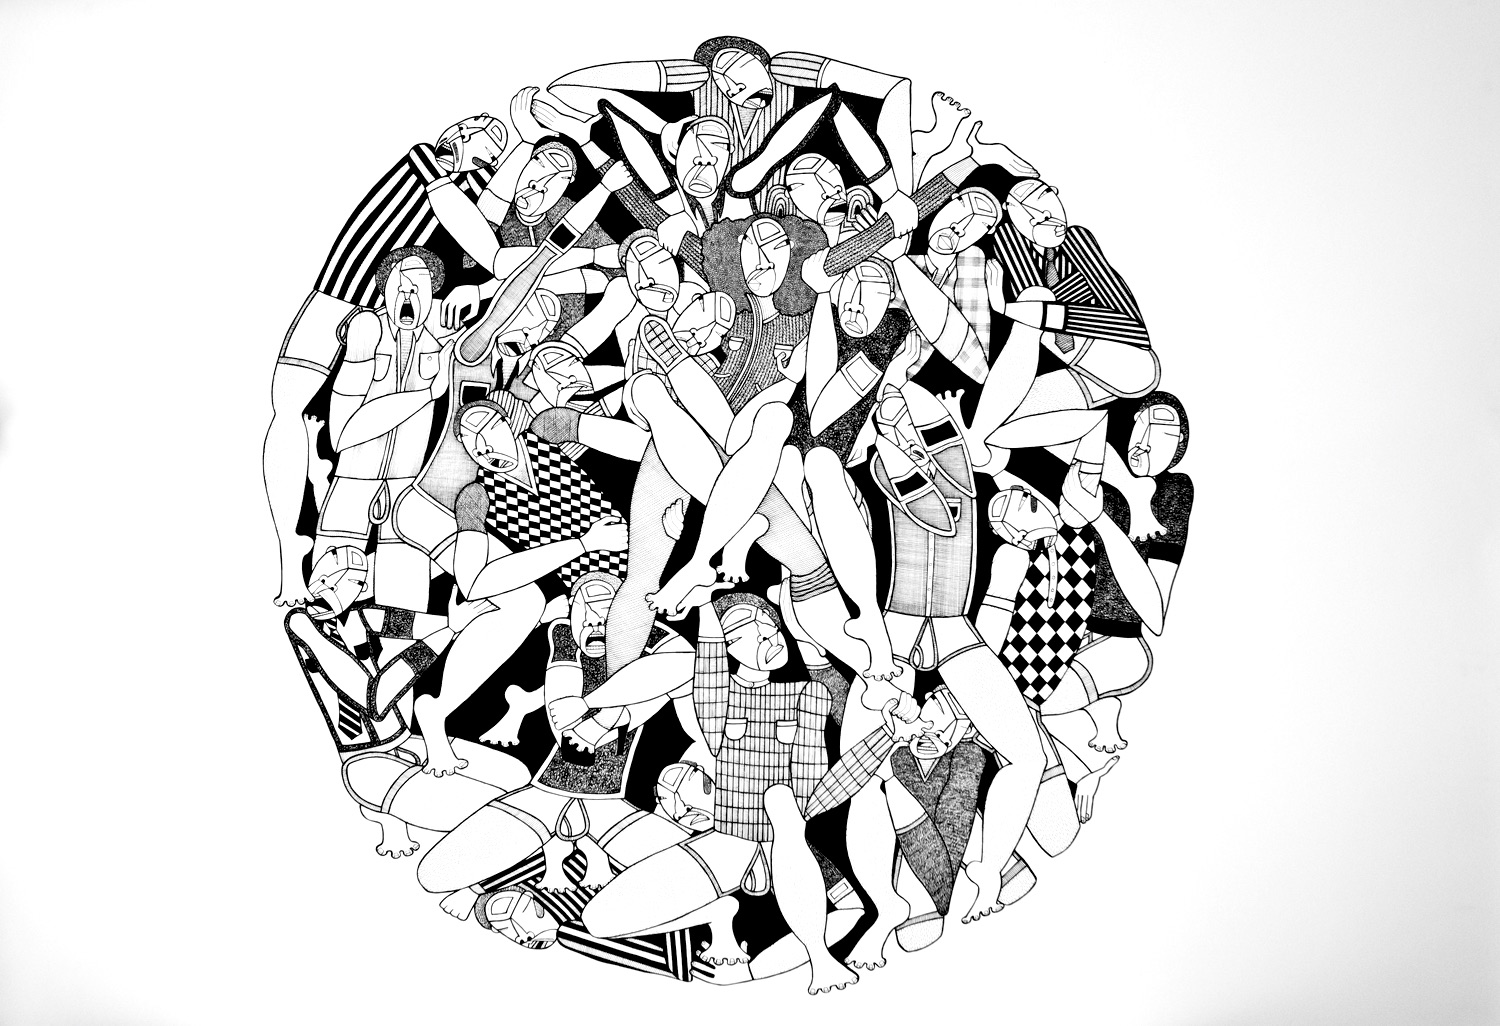 Vetruvian Woman, 30 x 44 inches, ink on paper, 2010, private collection